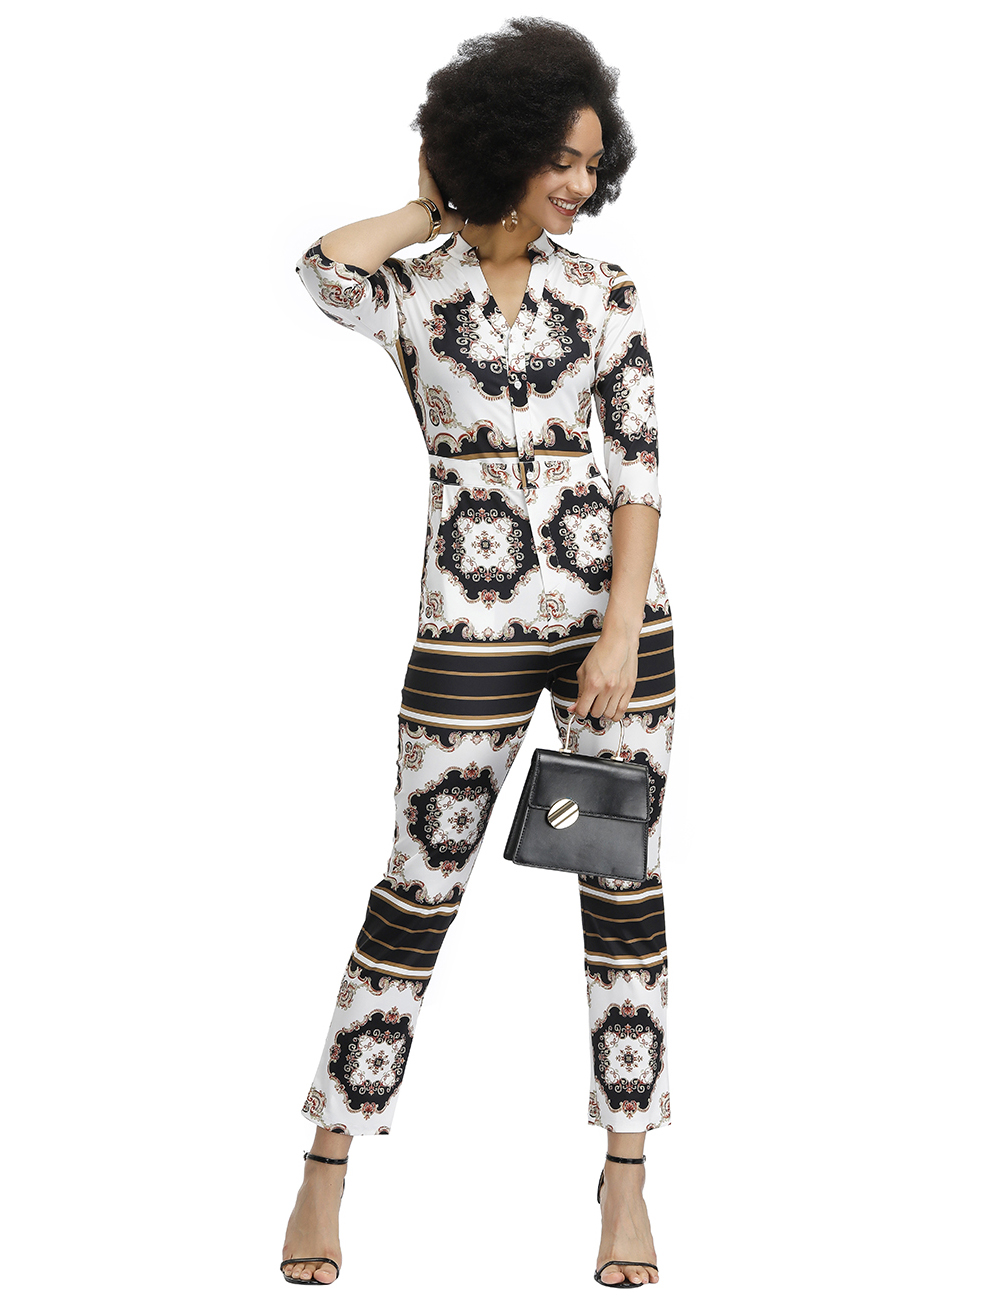 //cdn.affectcloud.com/hexinfashion/upload/imgs/Dress/Jumpsuit_Romper/VZ191111-BK1/VZ191111-BK1-201911055dc0da1a0480d.jpg